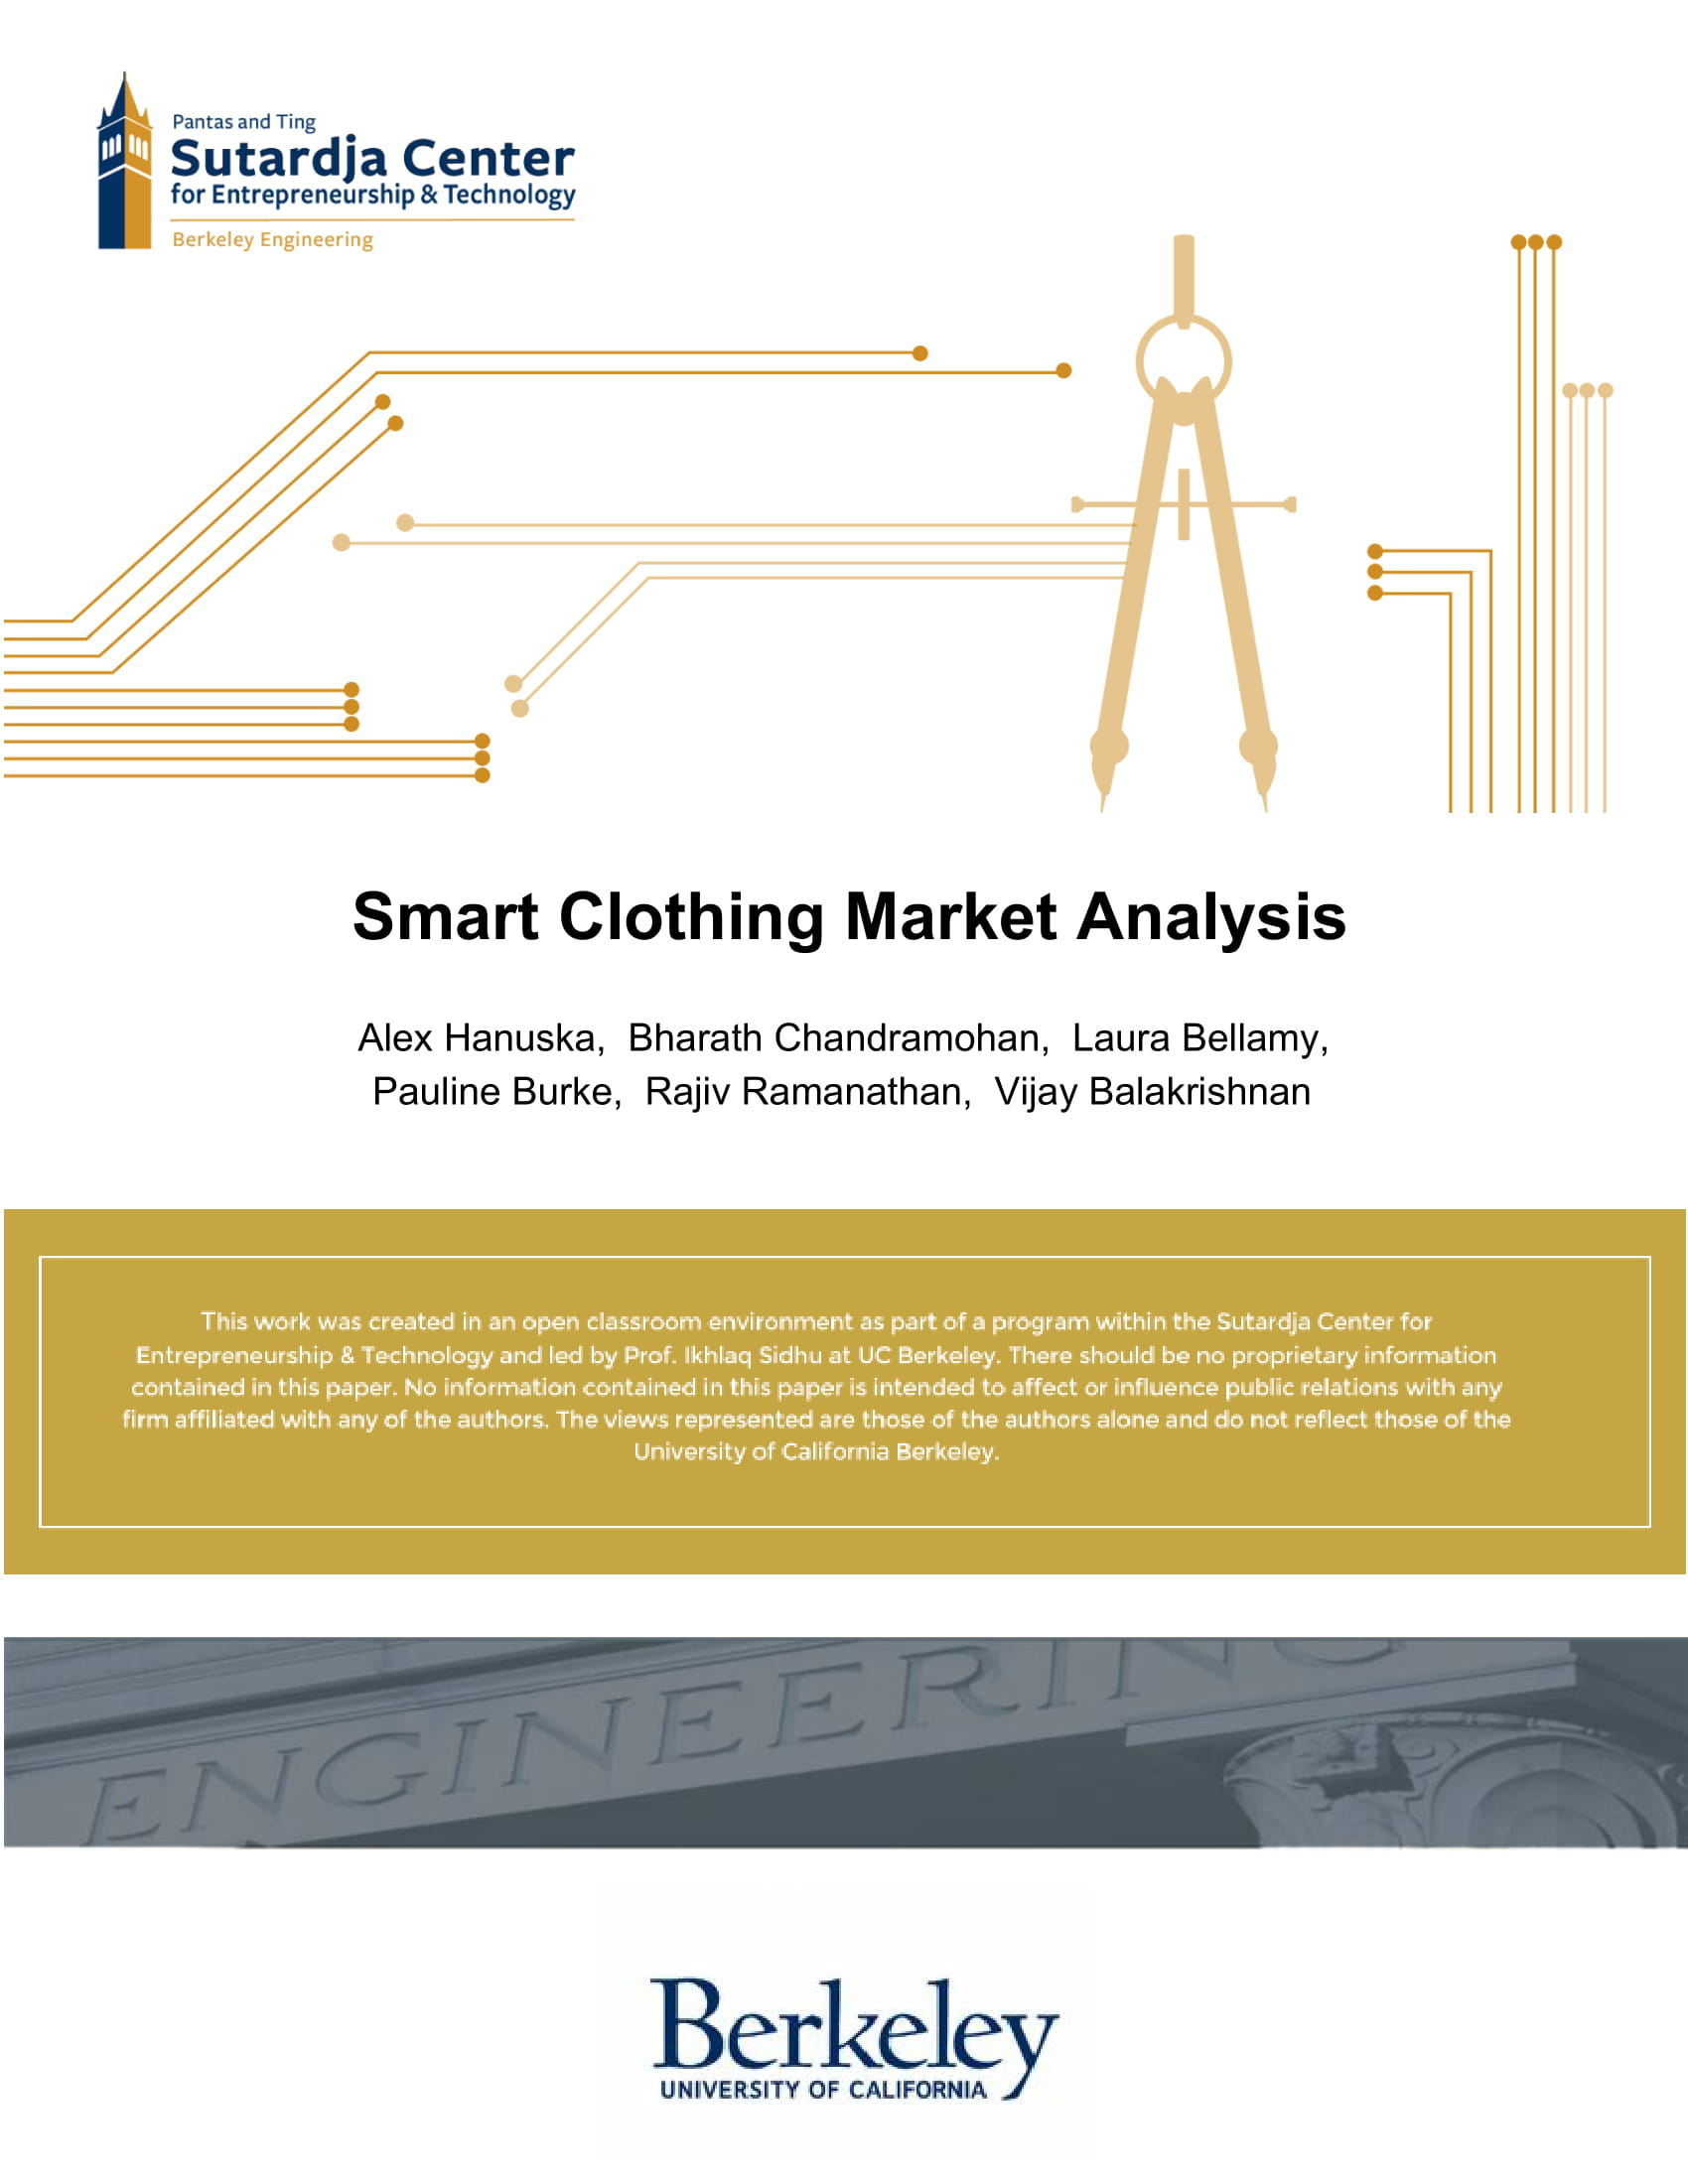 smart clothing market analysis report 01